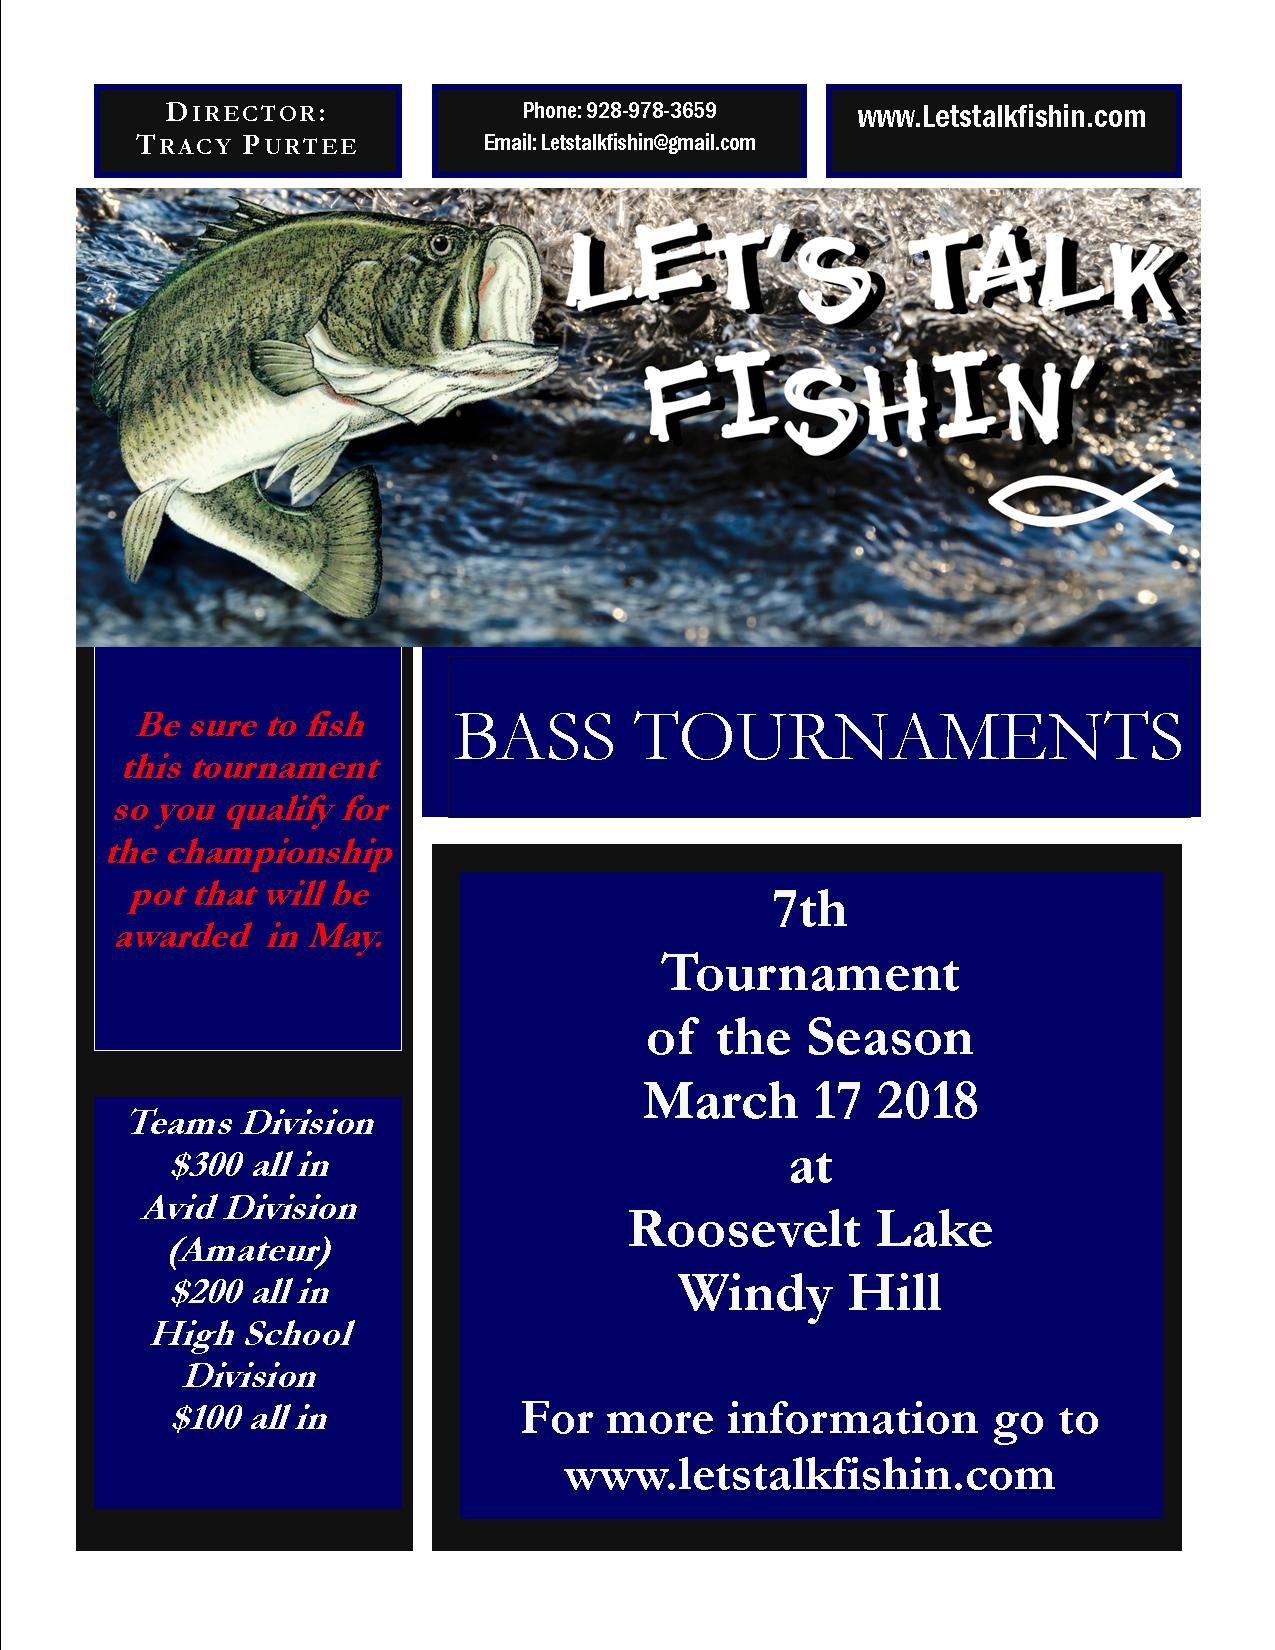 Click image for larger version  Name:7th Tournament.jpg Views:1927 Size:283.6 KB ID:96826